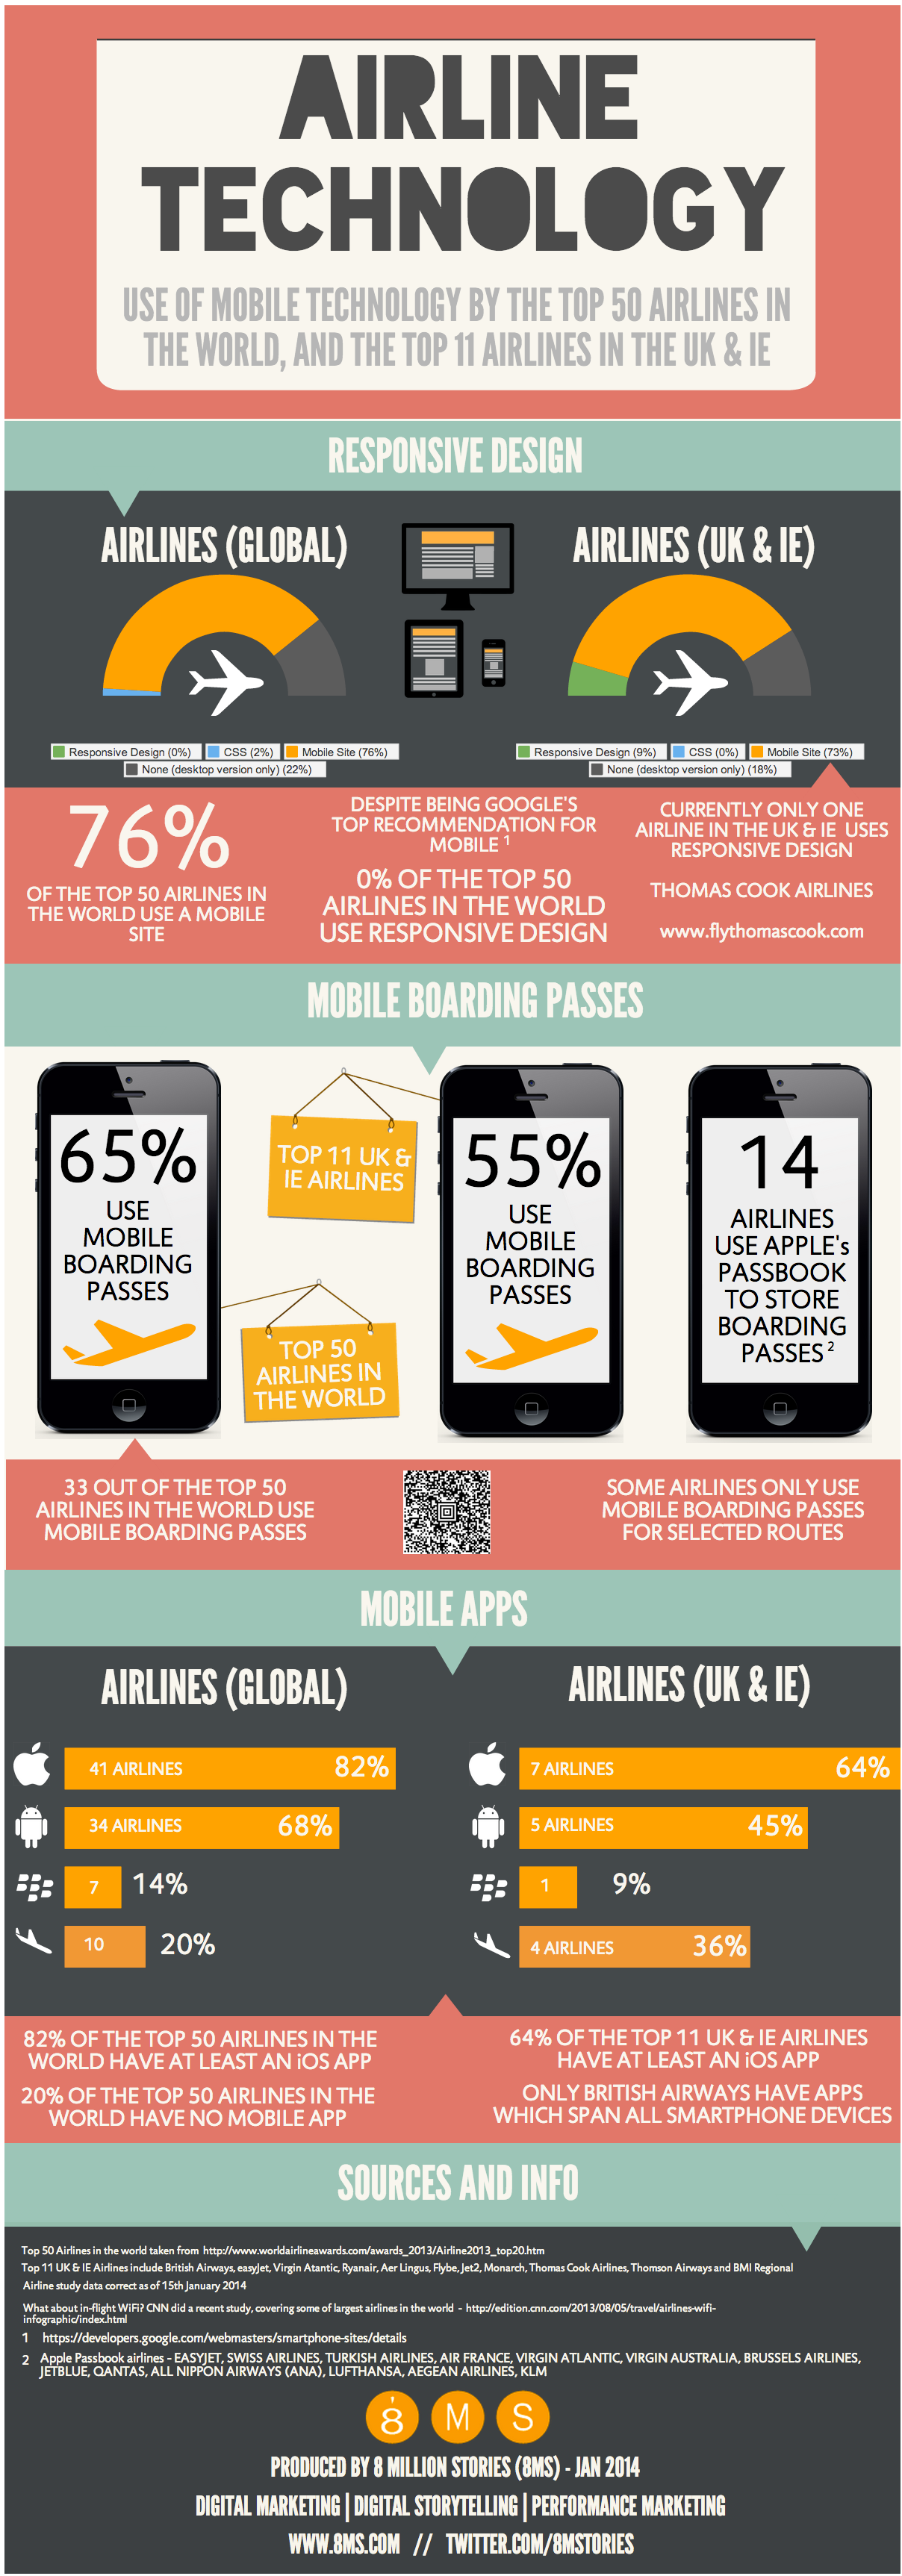 Airline Mobile Technology Usage - Study - INFOGRAPHIC